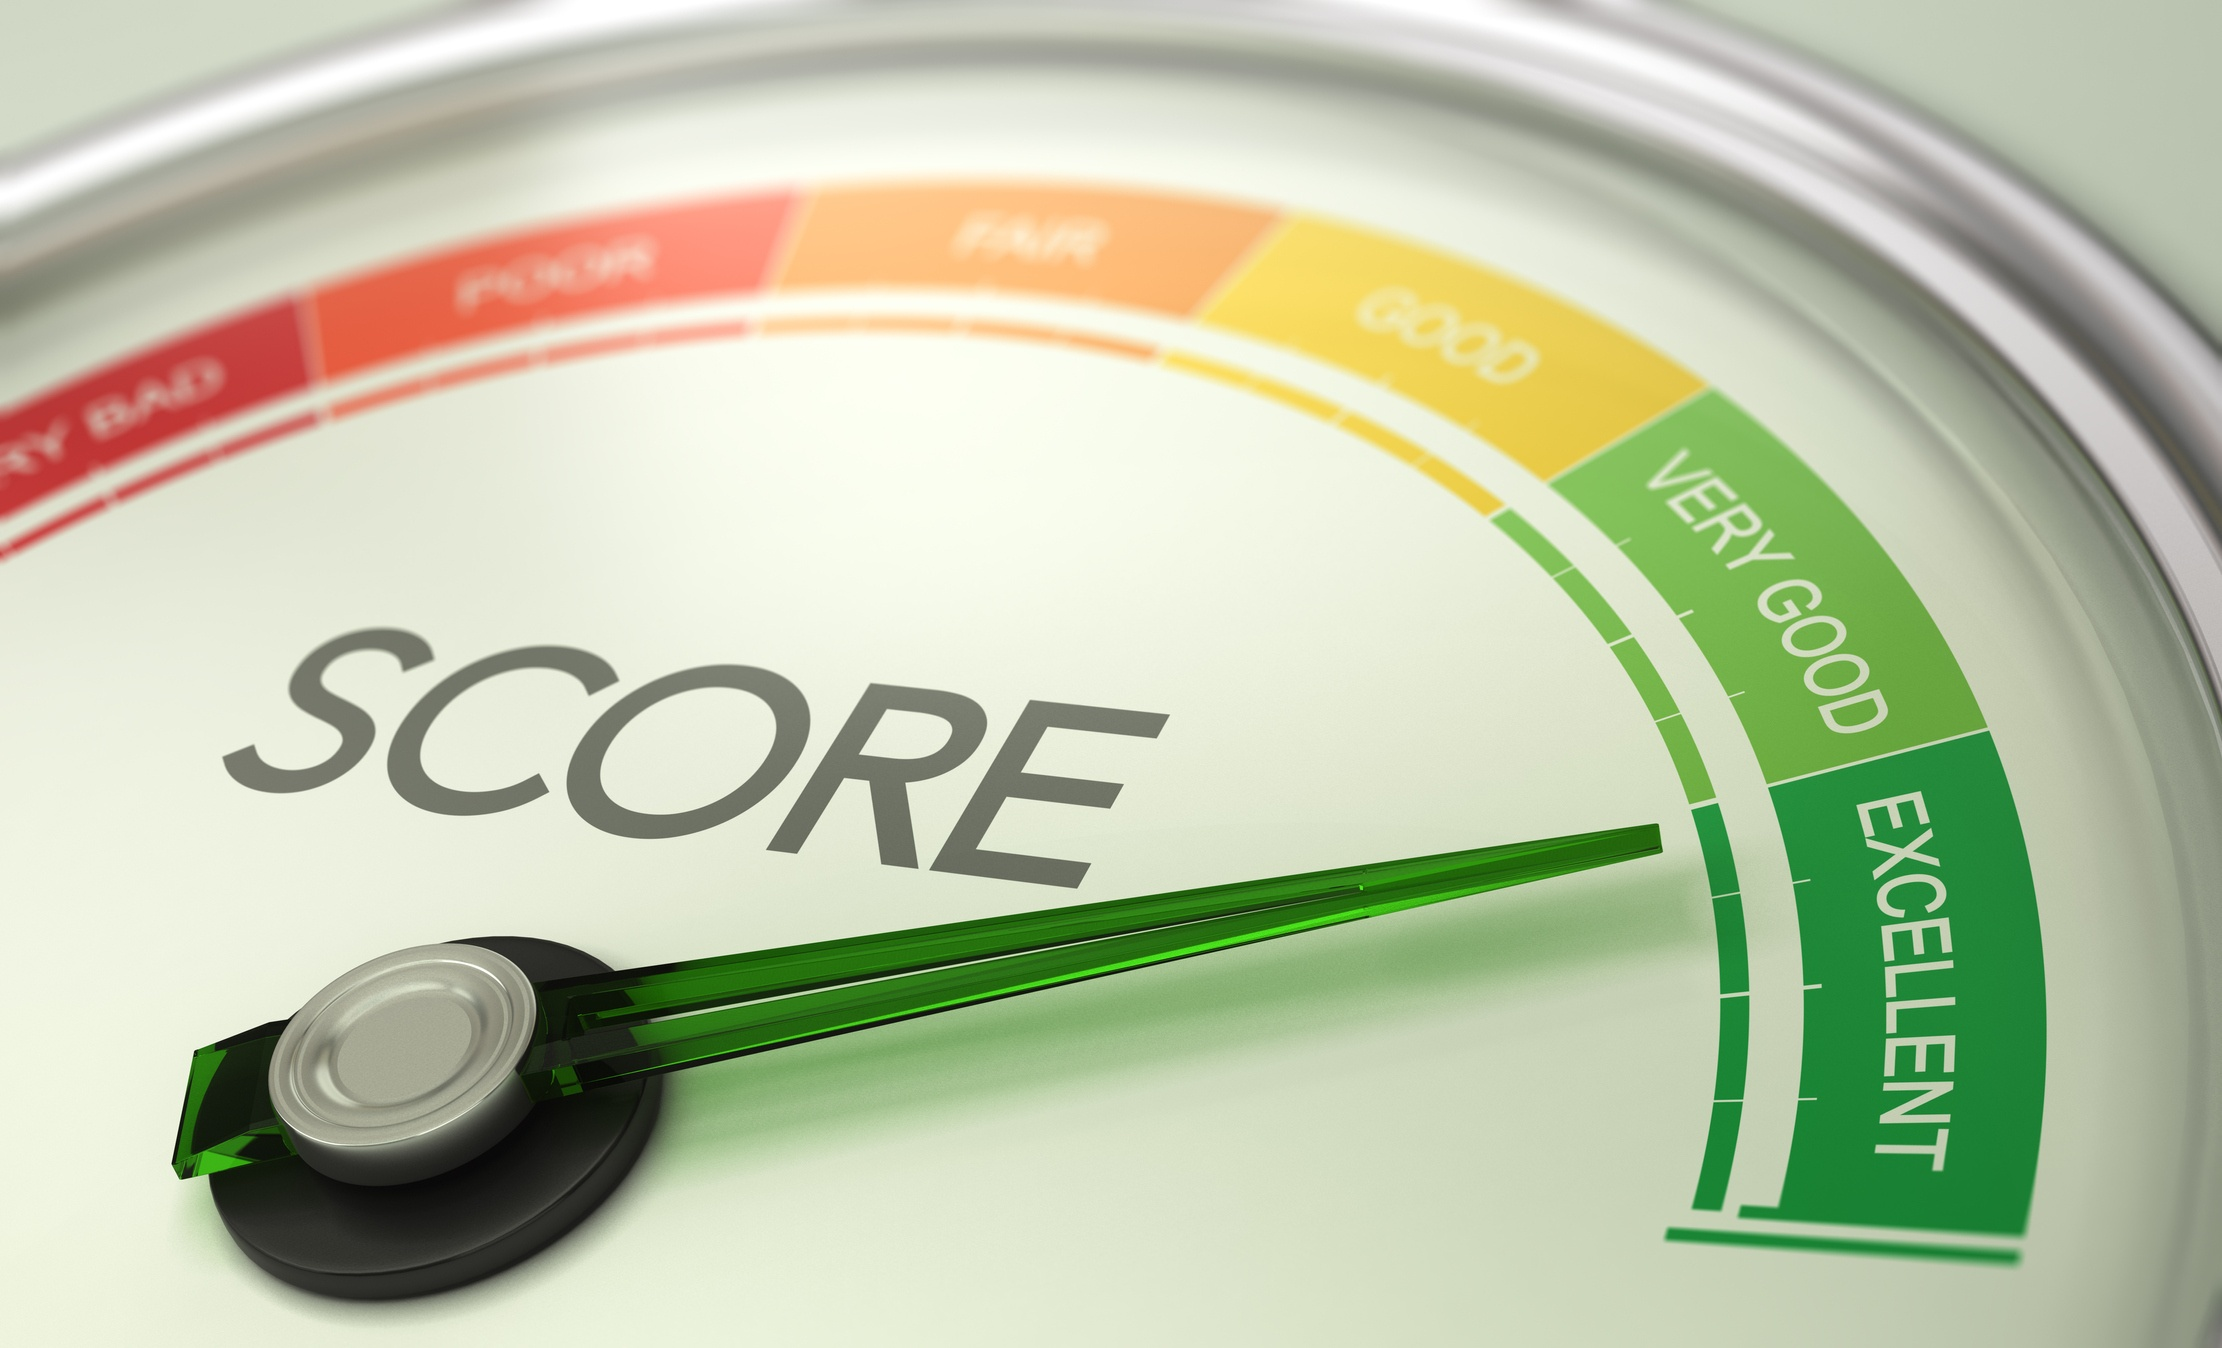 7 Steps To Improve Your Credit Score Right Now